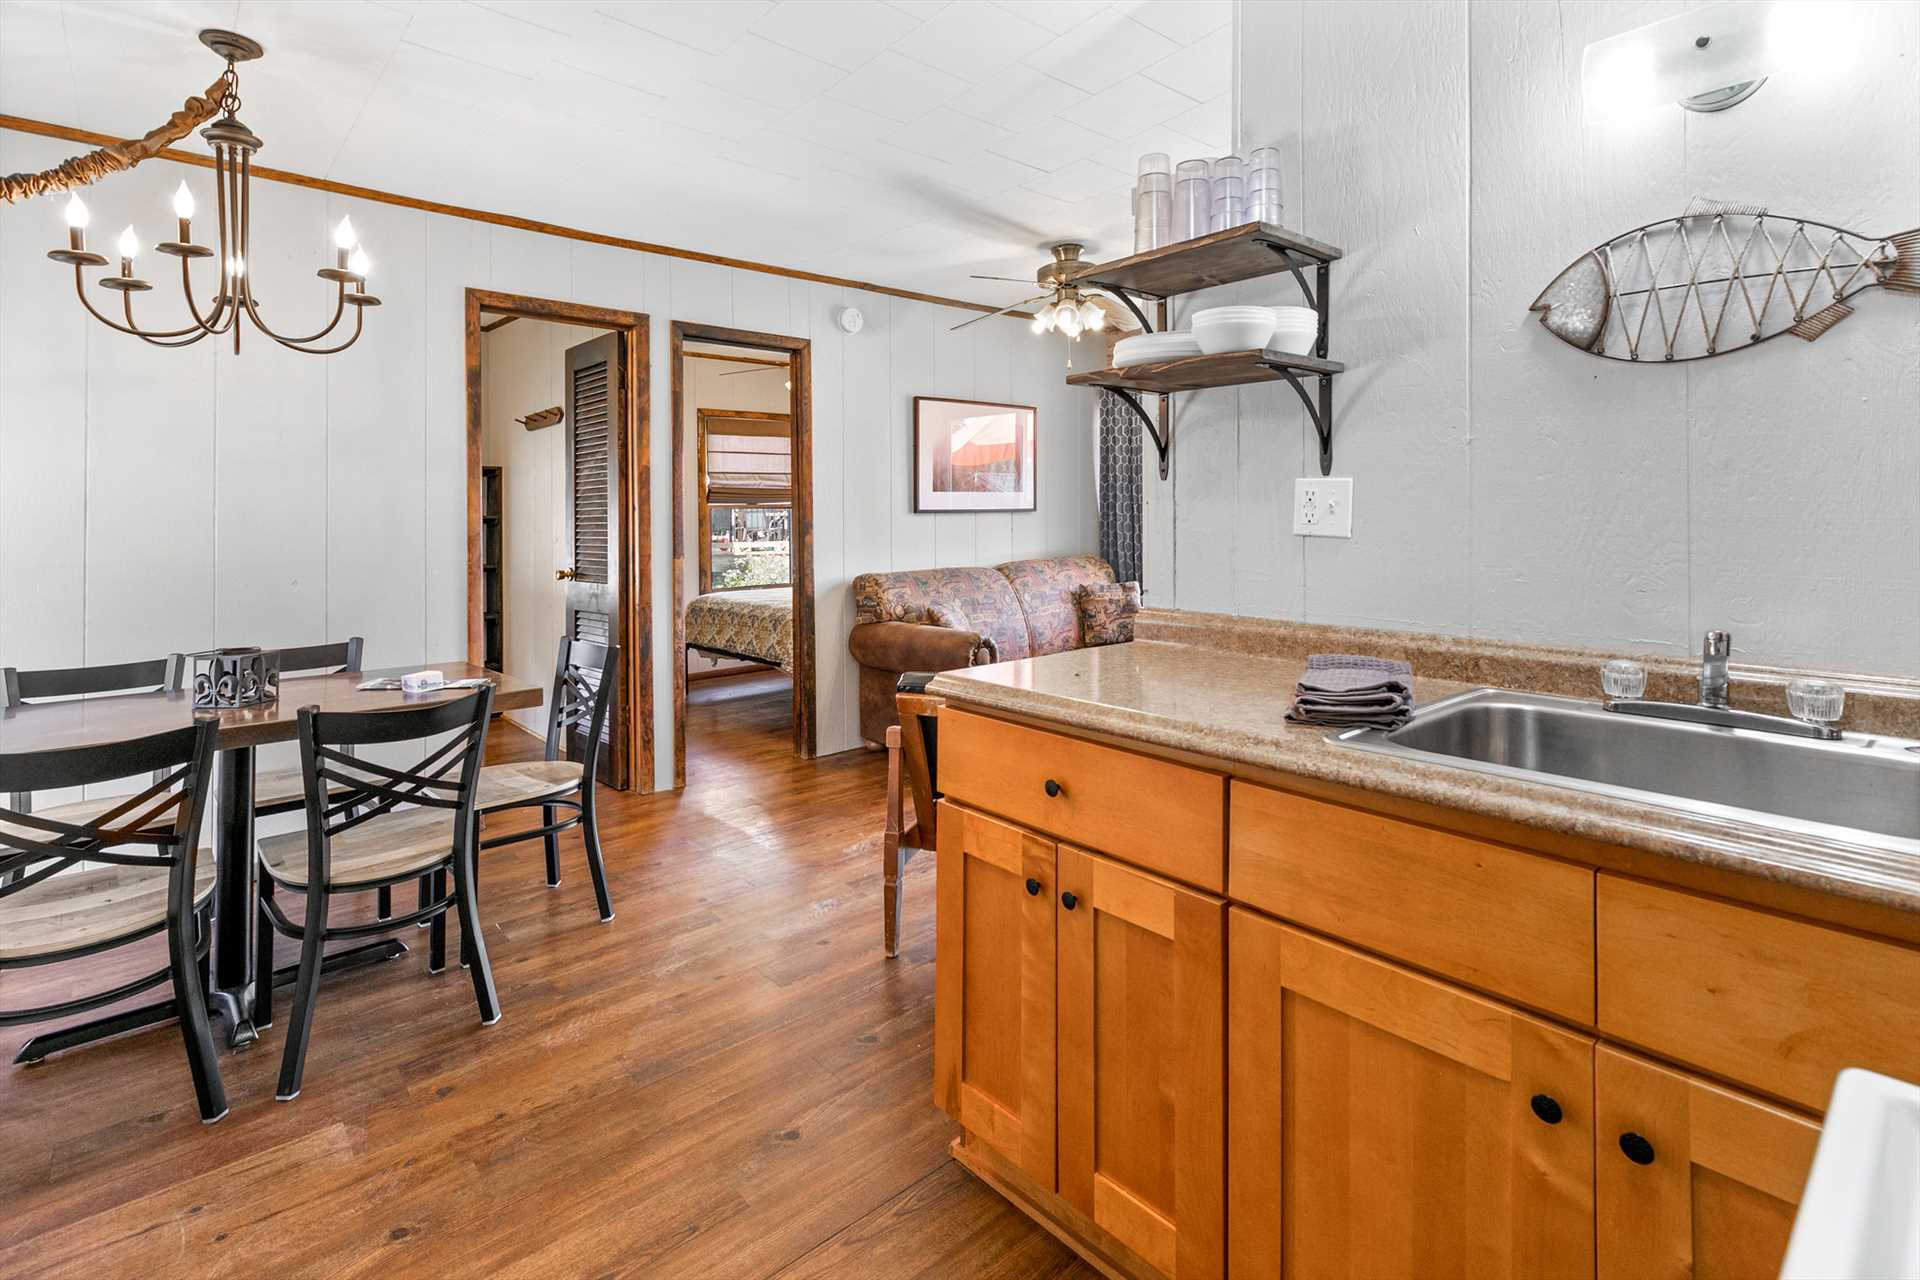 The kitchen is open to the living an dining areas.